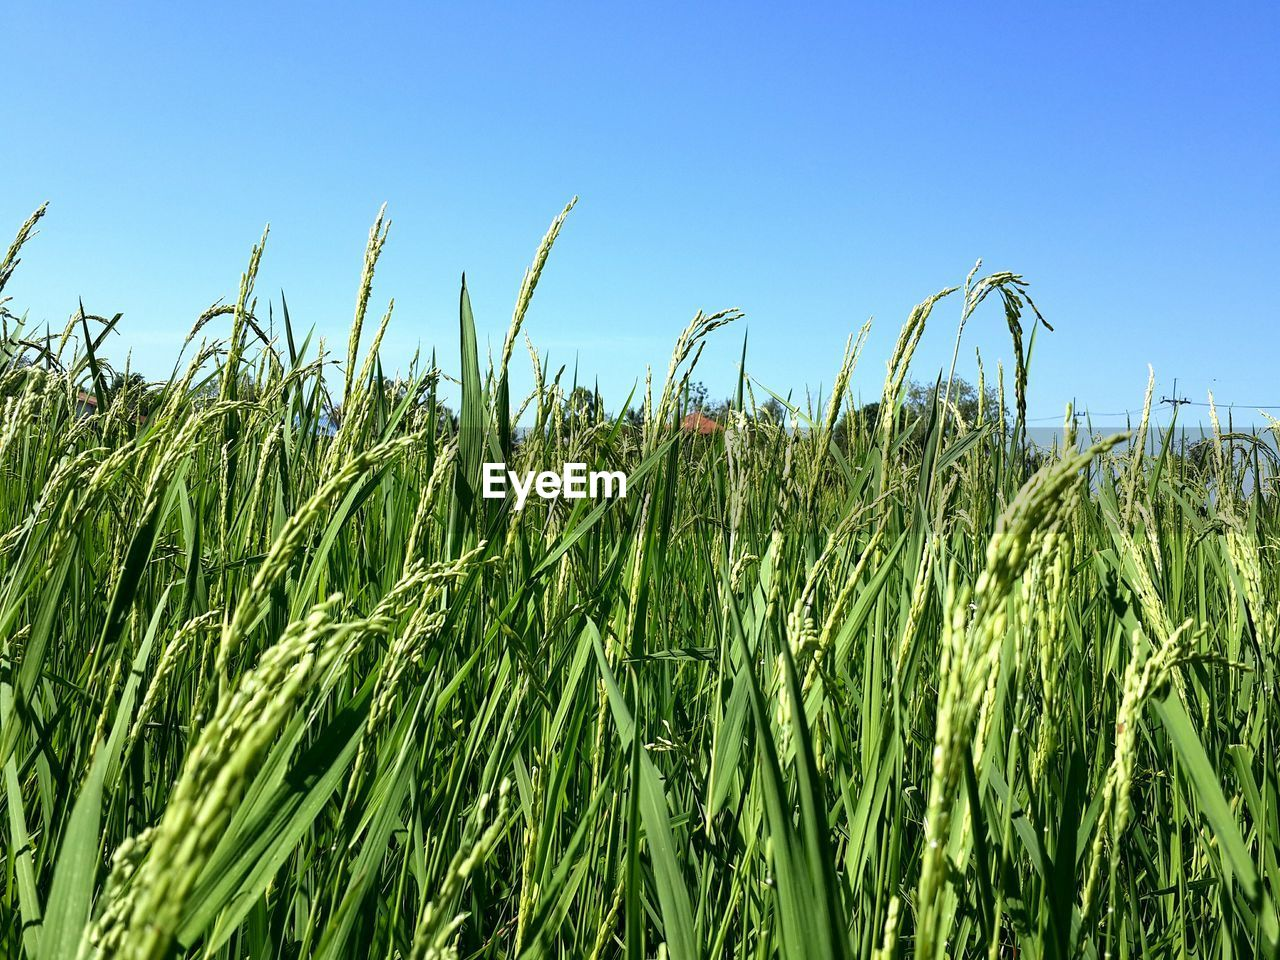 growth, agriculture, crop, farm, field, green color, nature, cereal plant, day, blue, plant, no people, tranquility, clear sky, outdoors, sky, ear of wheat, beauty in nature, rural scene, wheat, close-up, grass